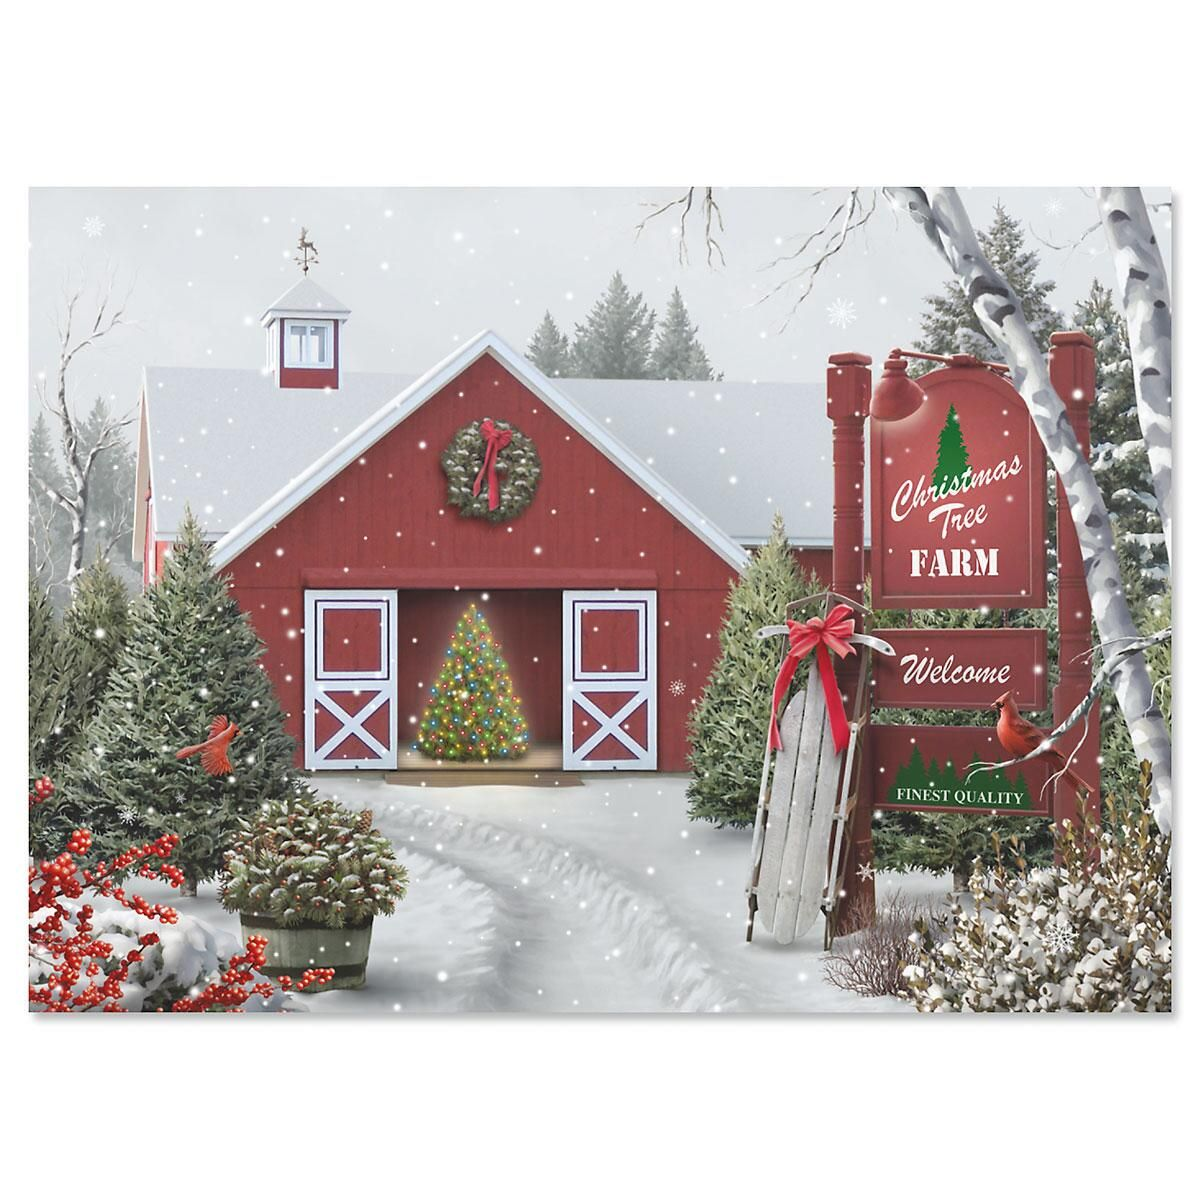 Tree Farm Personalized Christmas Cards | Current Catalog